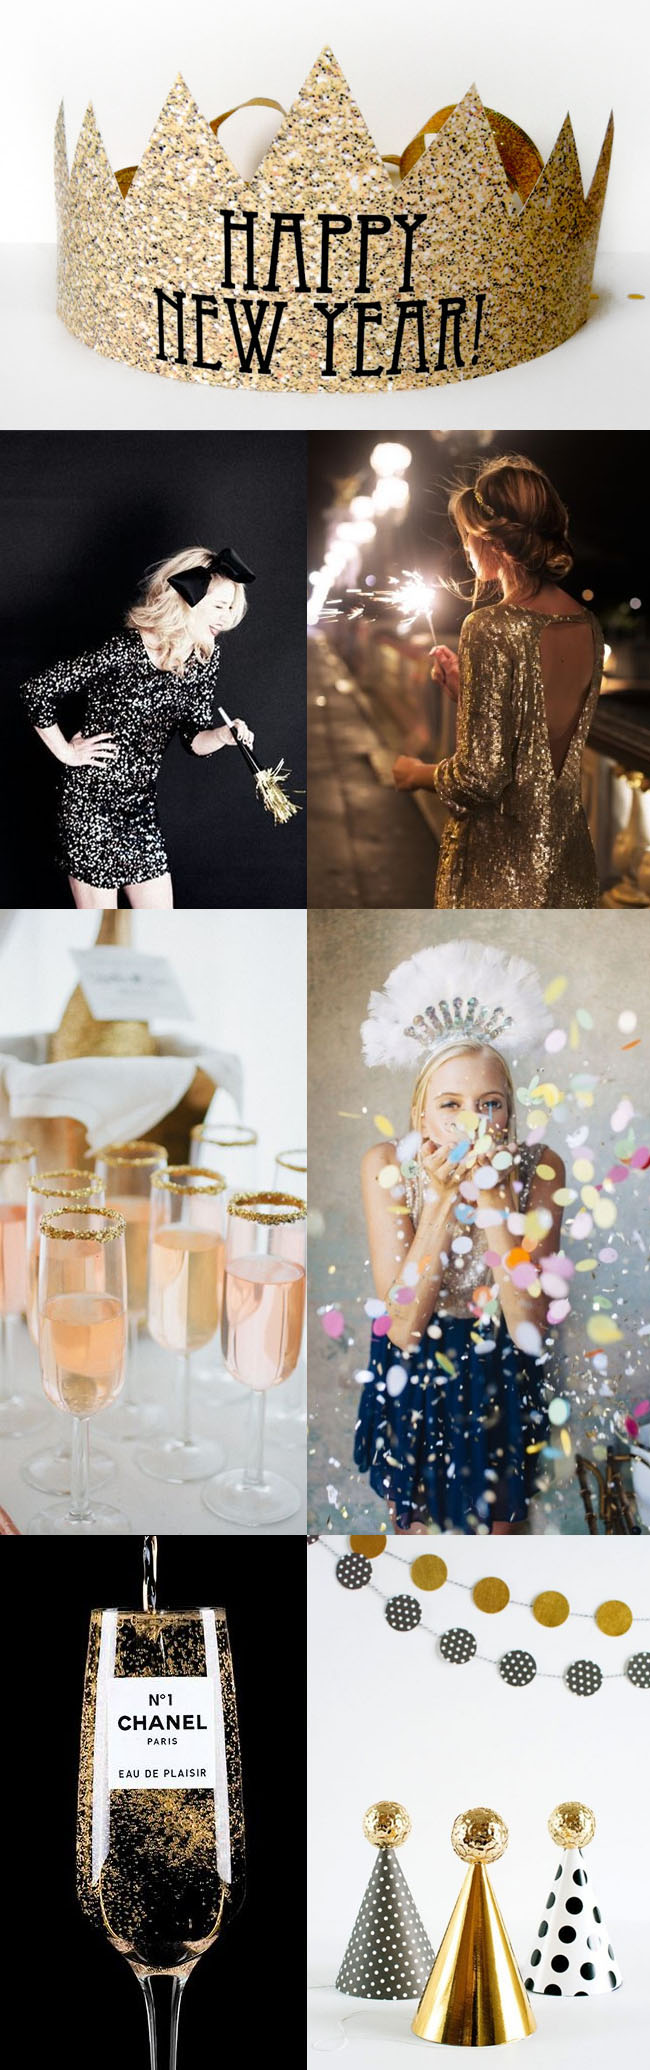 NYE Outfit Inspo15